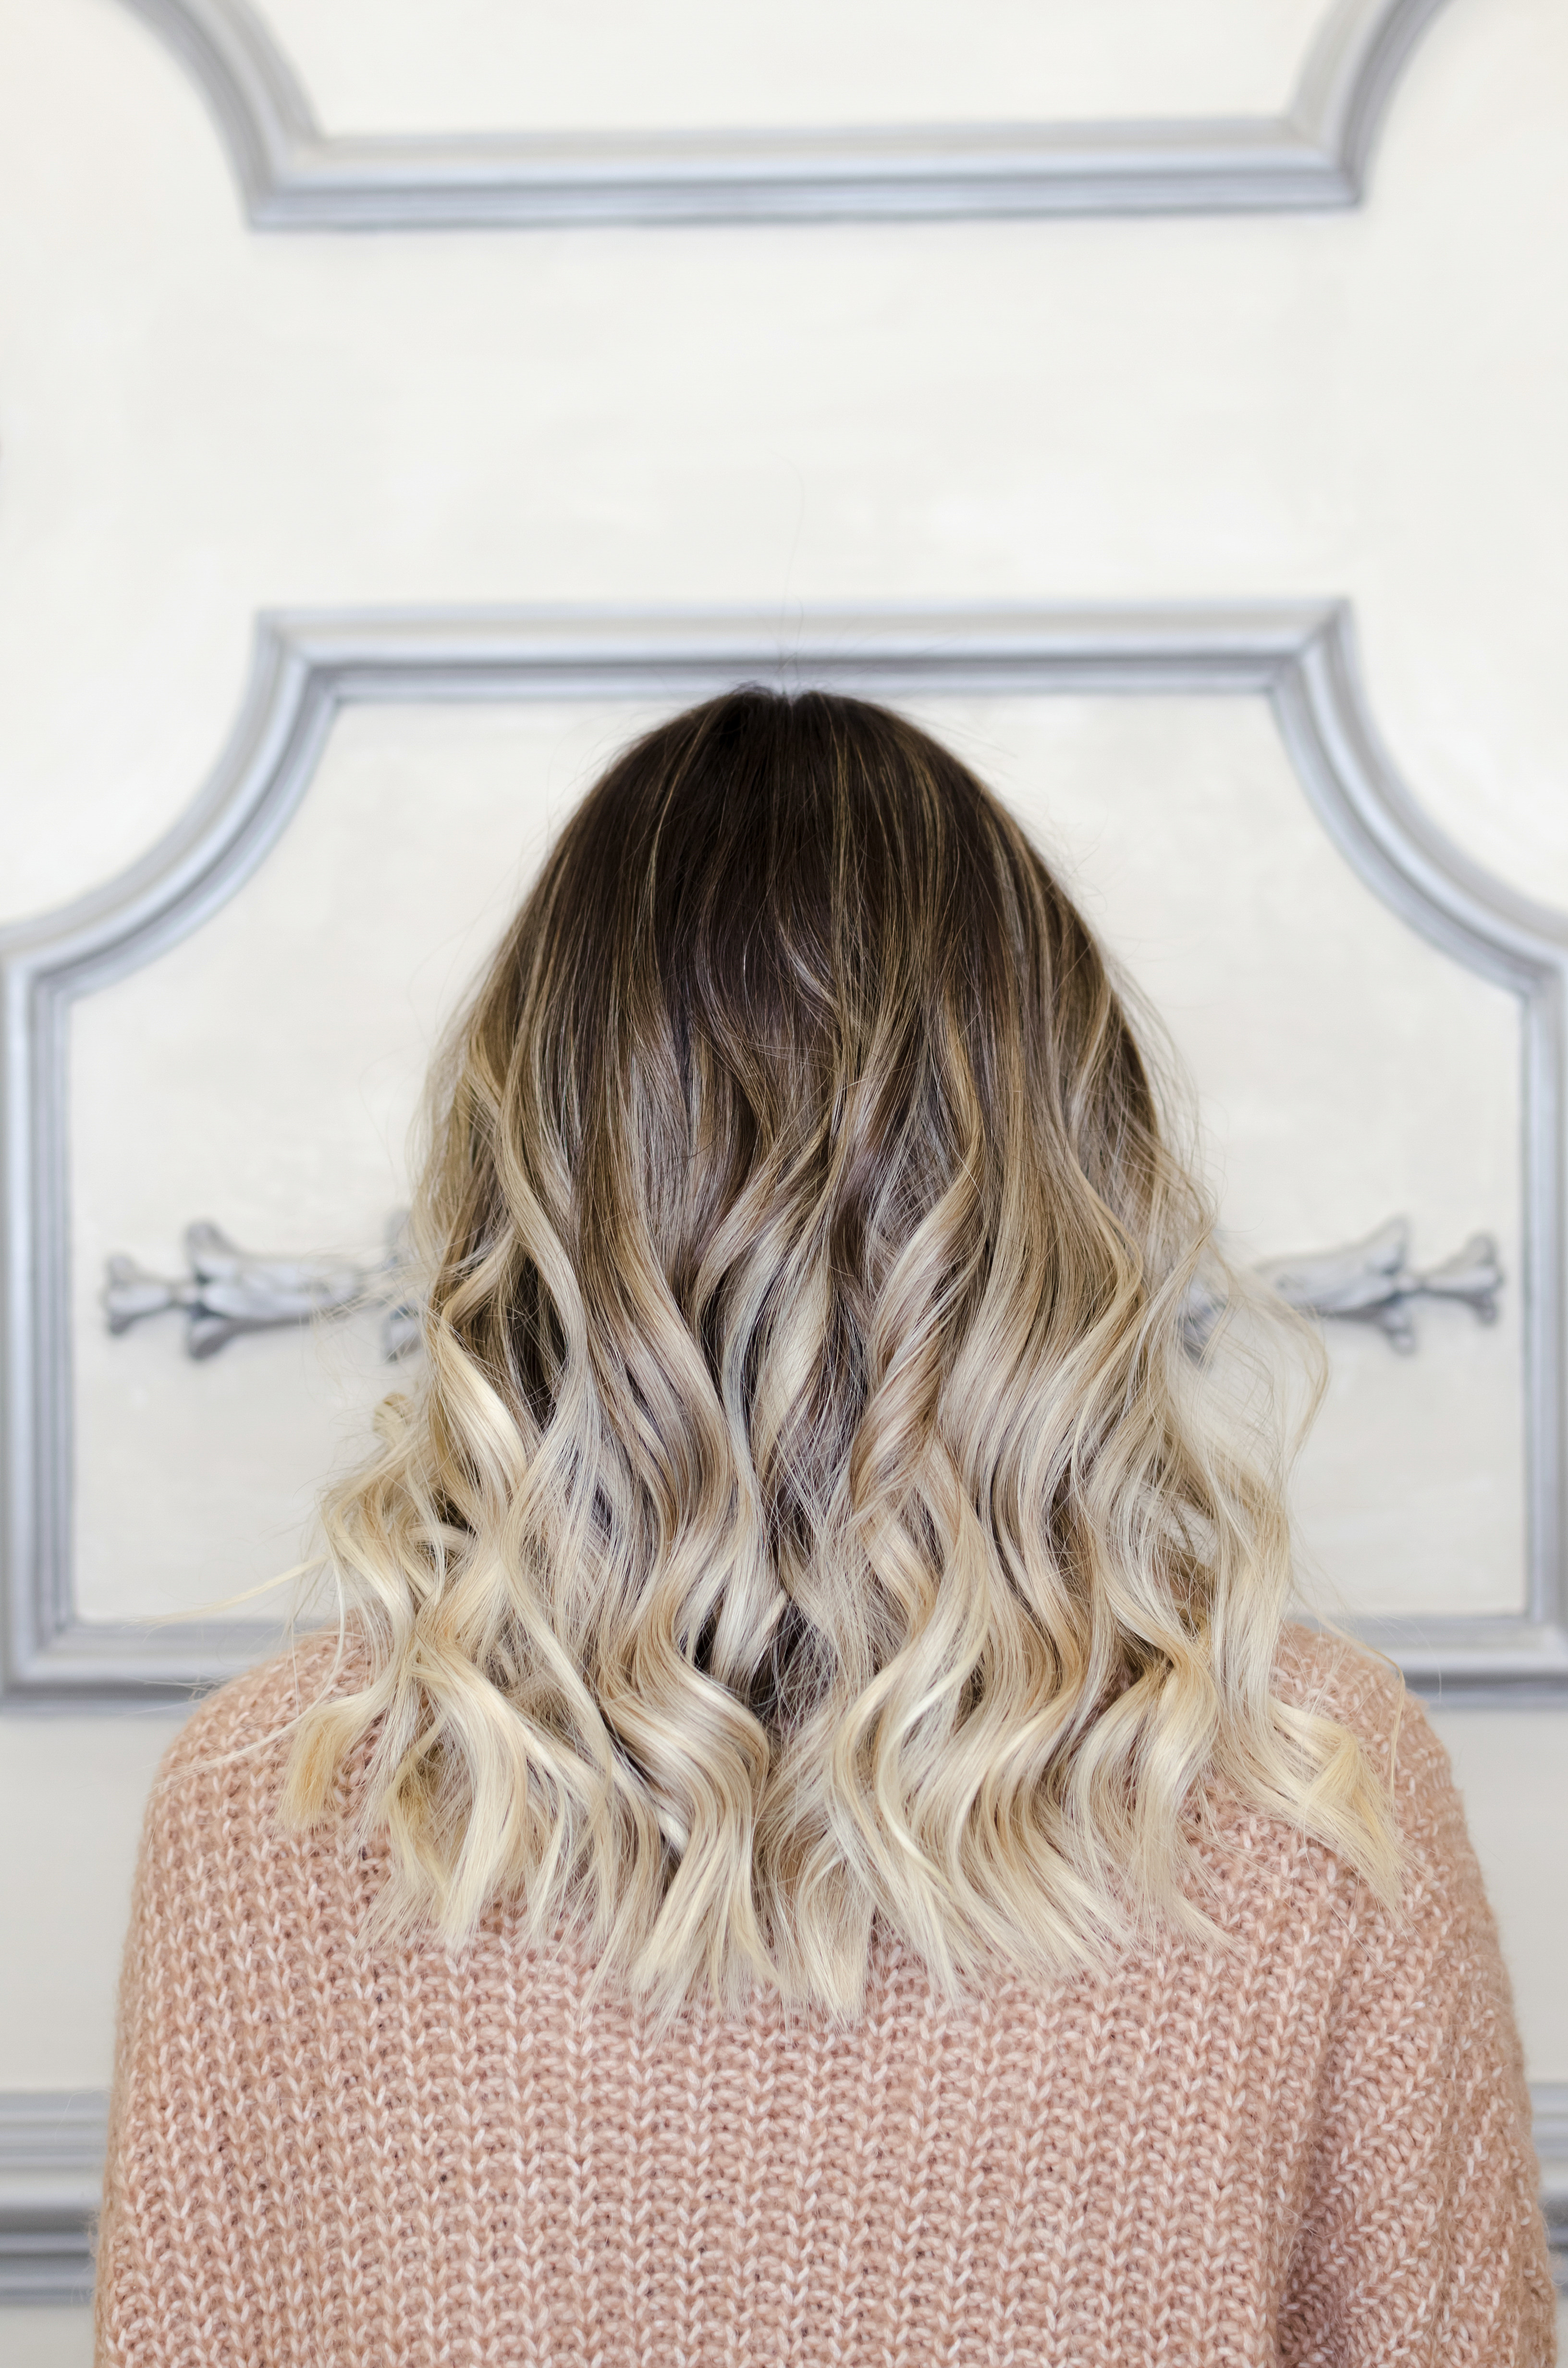 Specialty Color (Baylage, Ombre)